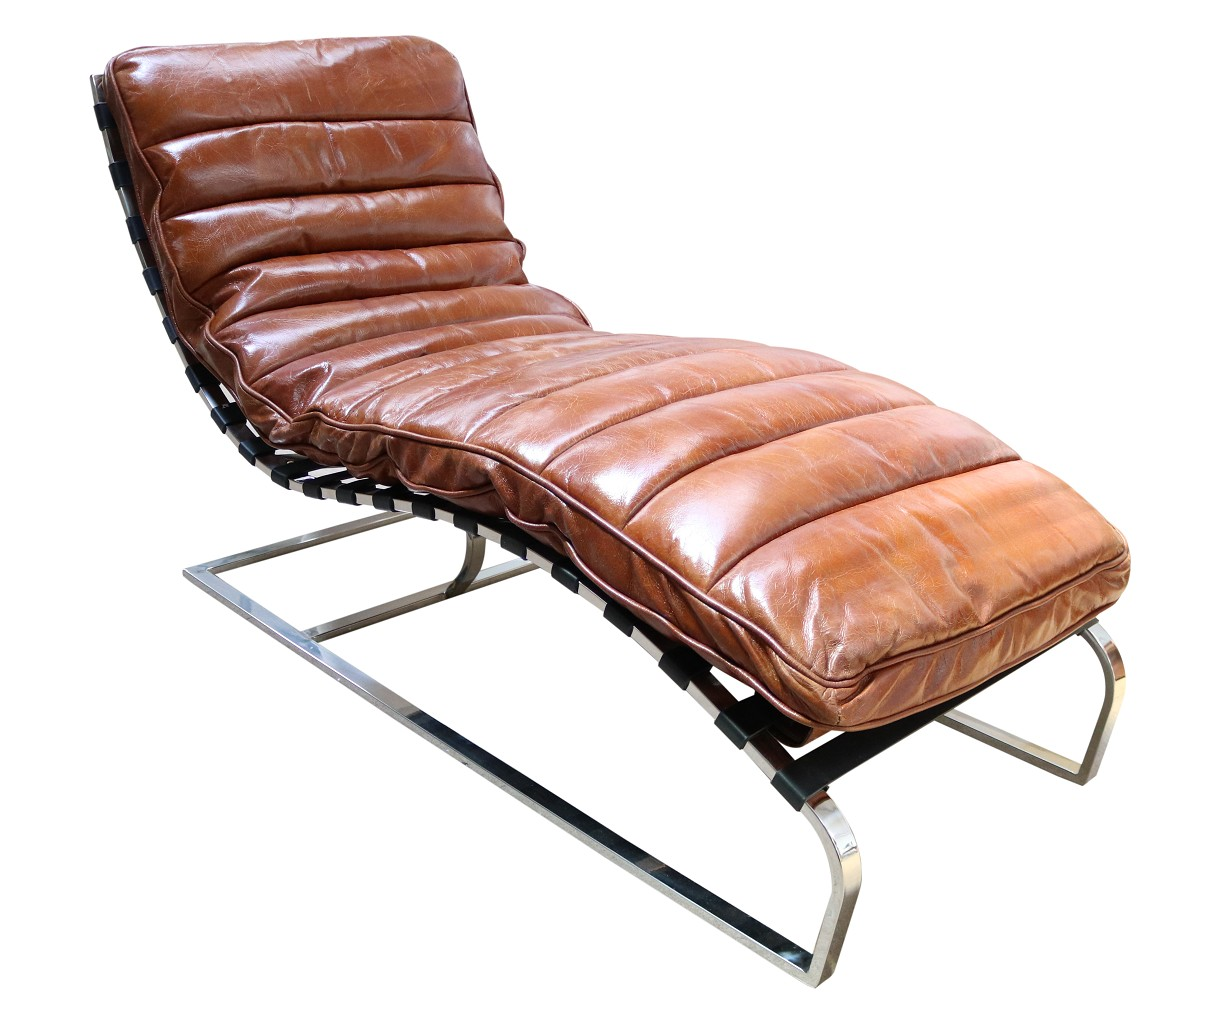 - Bilbao Daybed Vintage Tan Distressed Leather Chaise Lounge